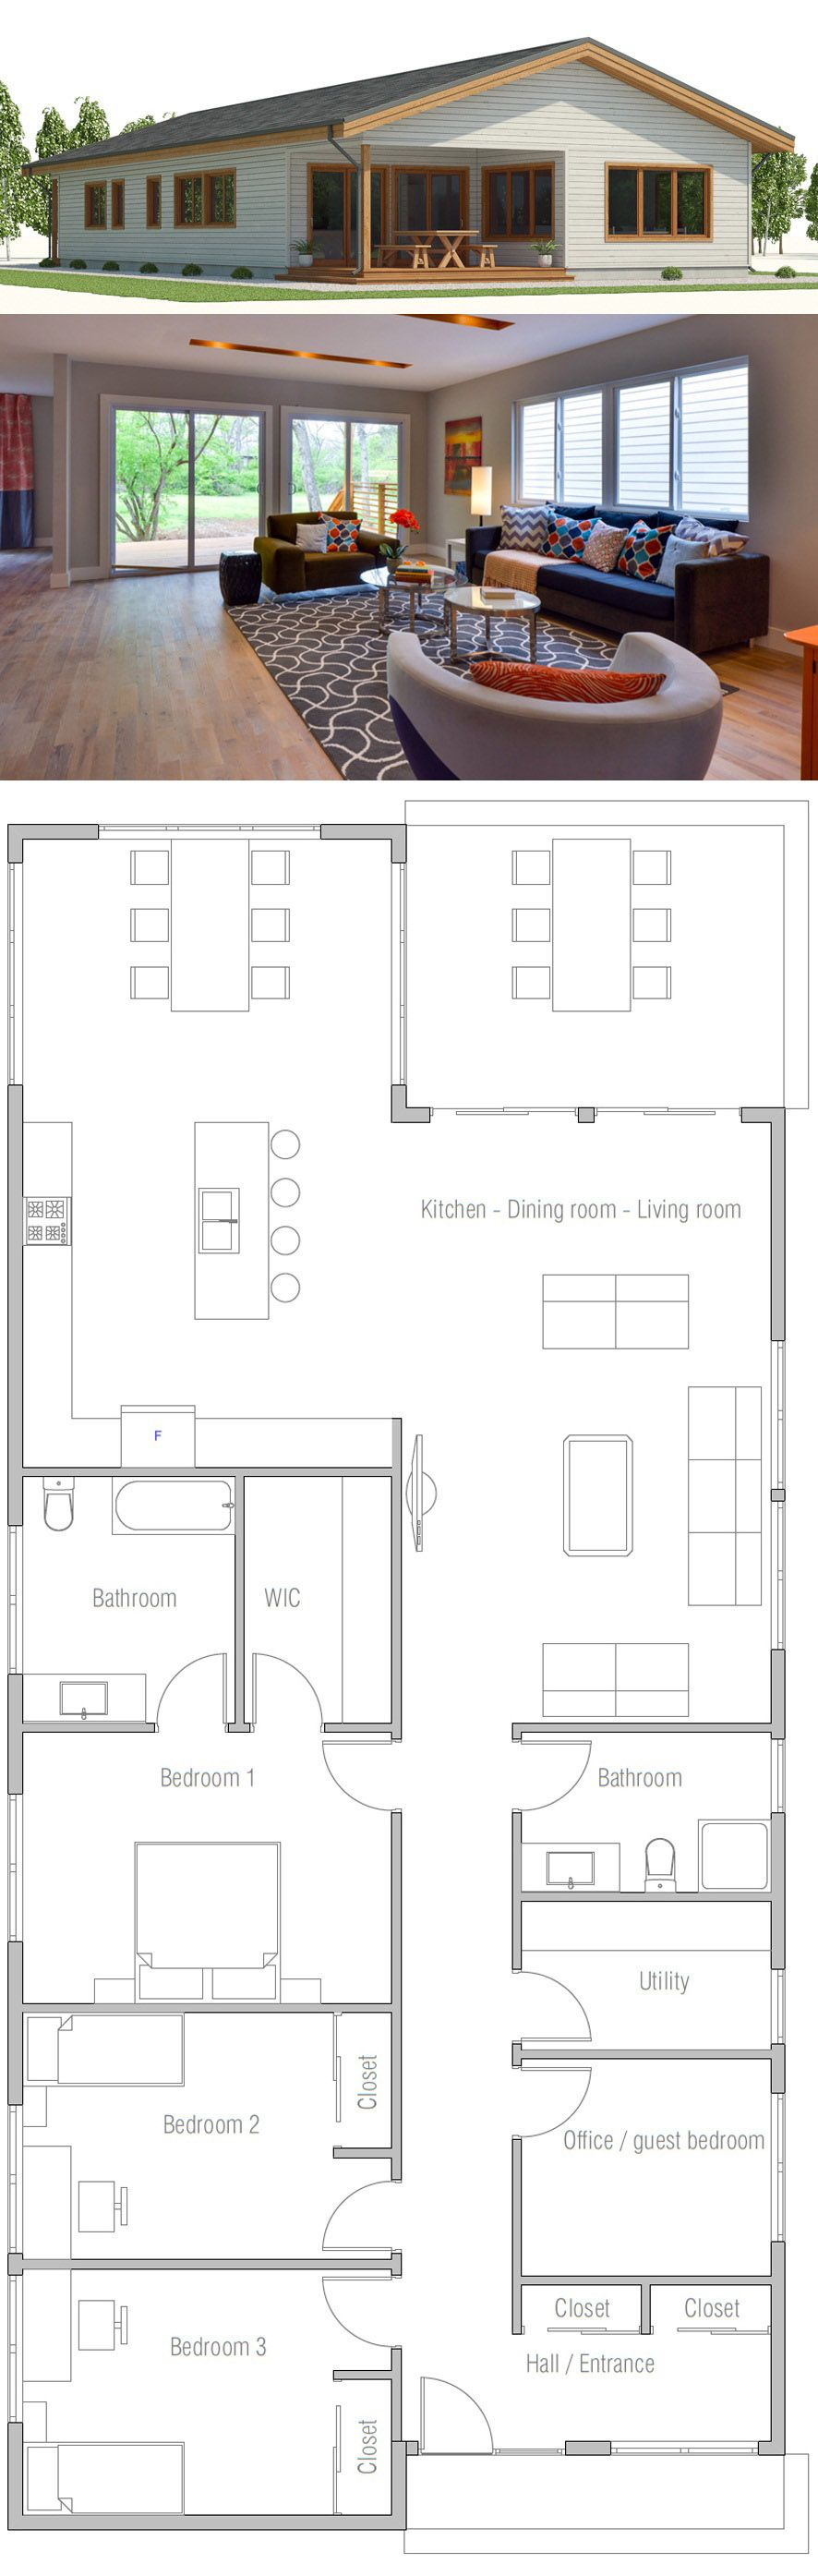 House Designs Home Plans House Architects Art Homeplans Dream House Plans Narrow House Plans Architect House